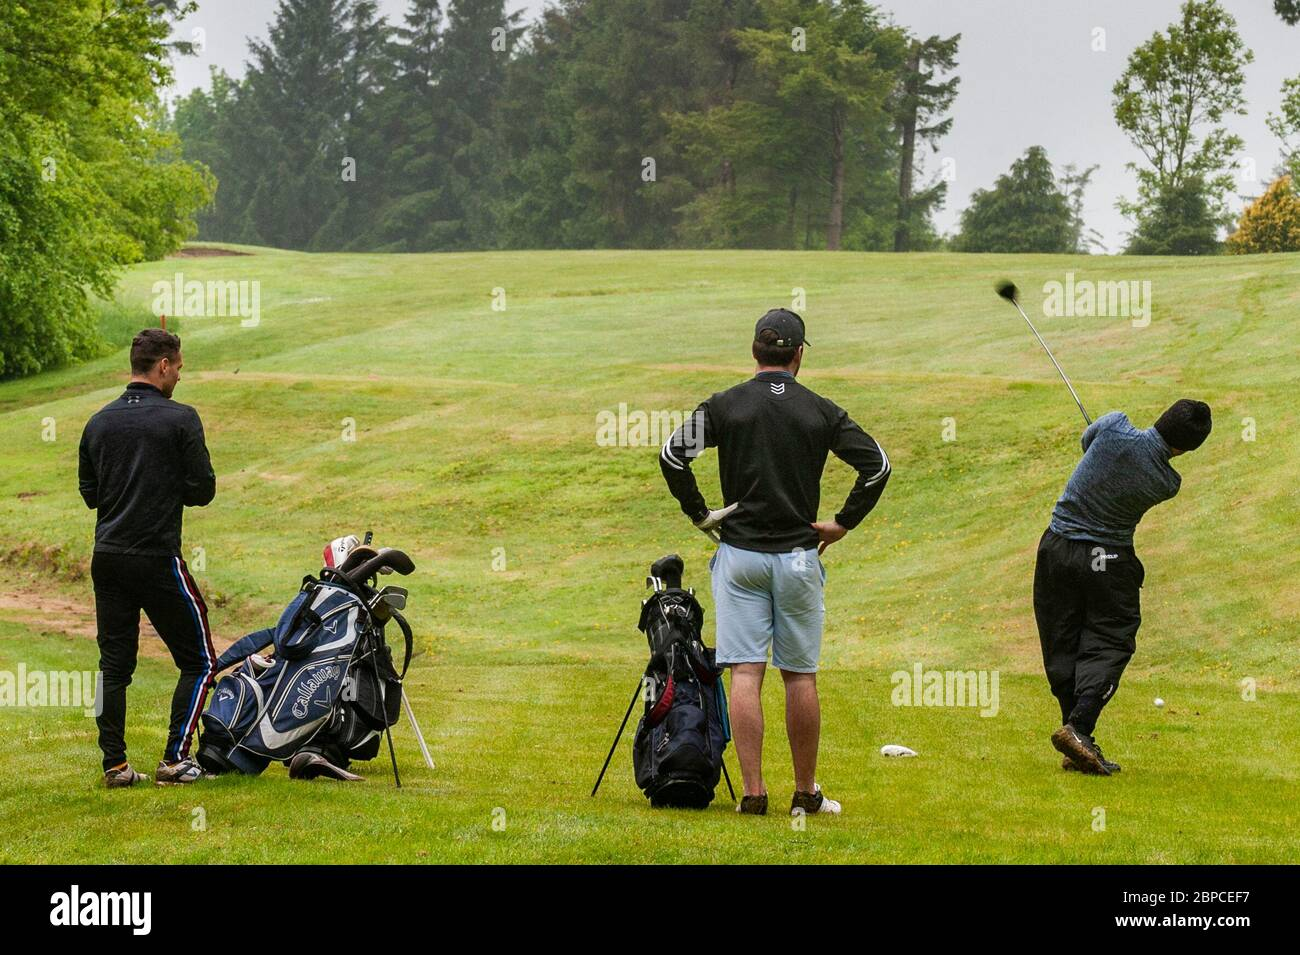 clonakilty-west-cork-ireland-18th-may-2020-clonakilty-golf-club-re-opened-today-as-part-of-the-exit-from-the-covid-19-lockdown-enjoying-the-first-day-back-to-the-fairways-whilst-maintaing-social-distancing-were-golf-club-members-sean-ryan-ross-mannix-and-owen-deasy-credit-ag-newsalamy-live-news-2BPCEF7.jpg